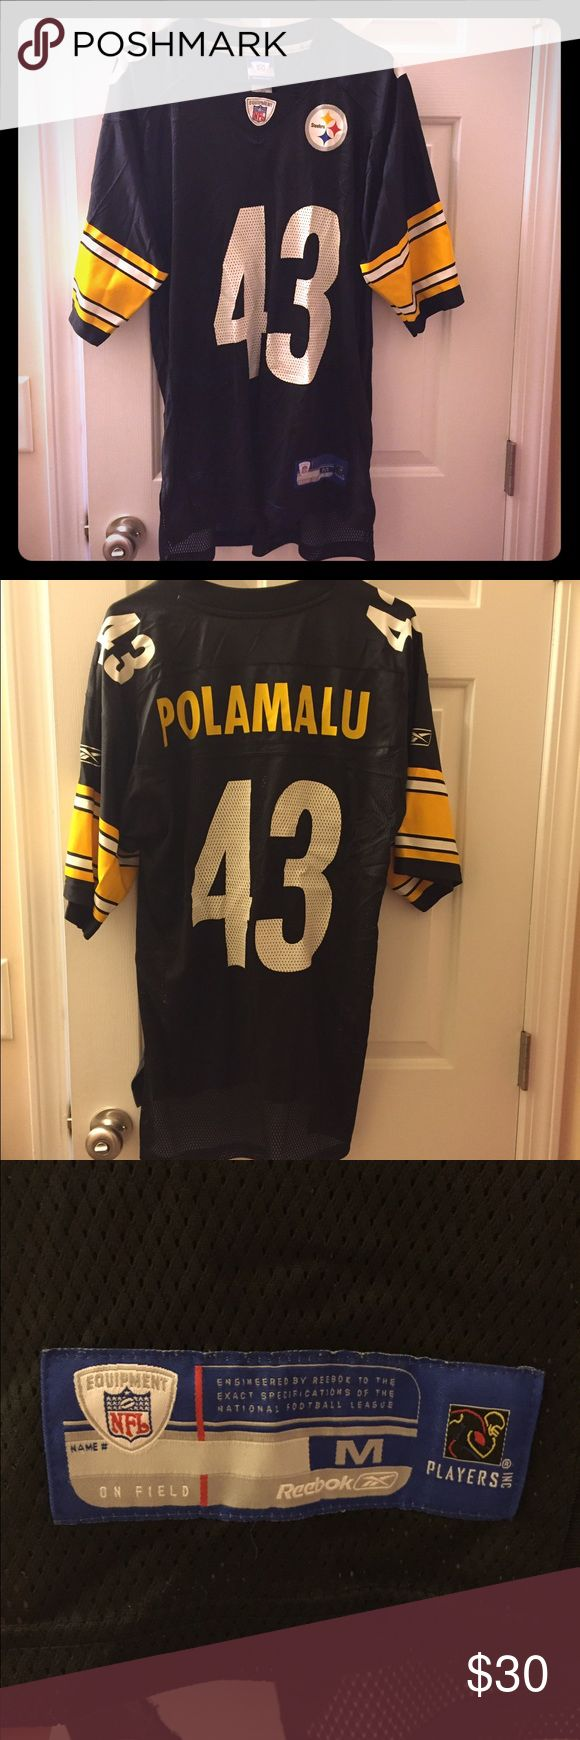 Authentic Steelers Jersey NFL It's almost time for kickoff! This is an Authentic Pittsburgh Steelers jersey (Troy Polamalu). Officially licensed by the NFL. Size is Adult Medium (men's or women's). It has been worn approximately 3-5 times since I purchased it. I will gladly de-wrinkle the jersey if purchased! NFL Other